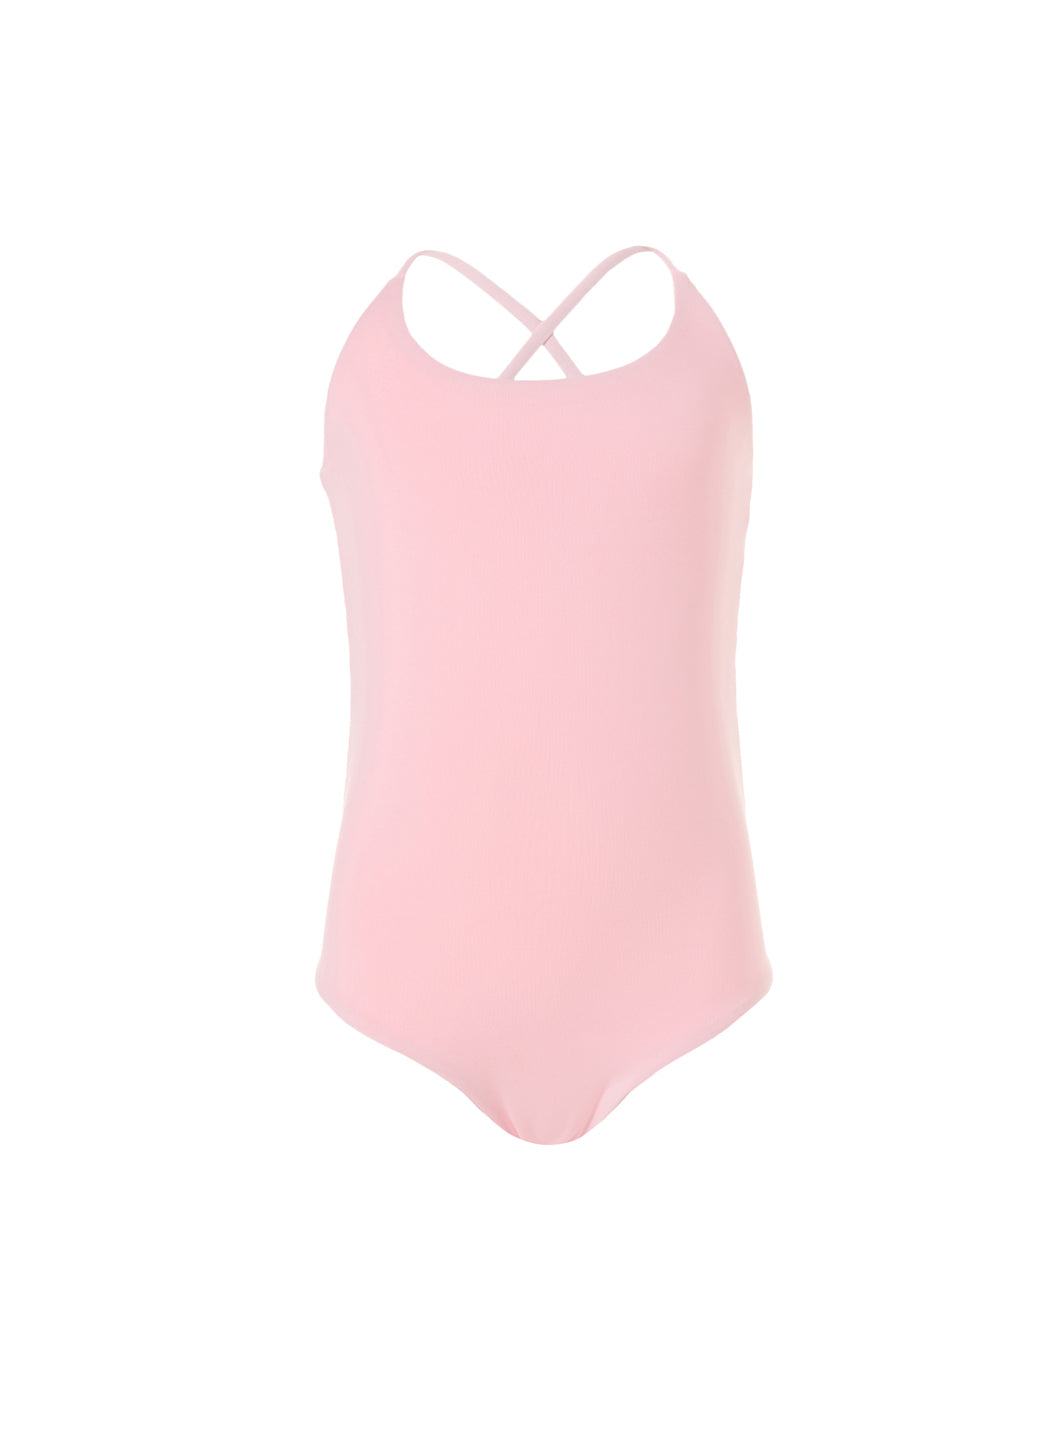 Baby Vicky Pale Pink /Neon  Cross-Back Onepiece Swimsuit - Melissa Odabash Childrenswear